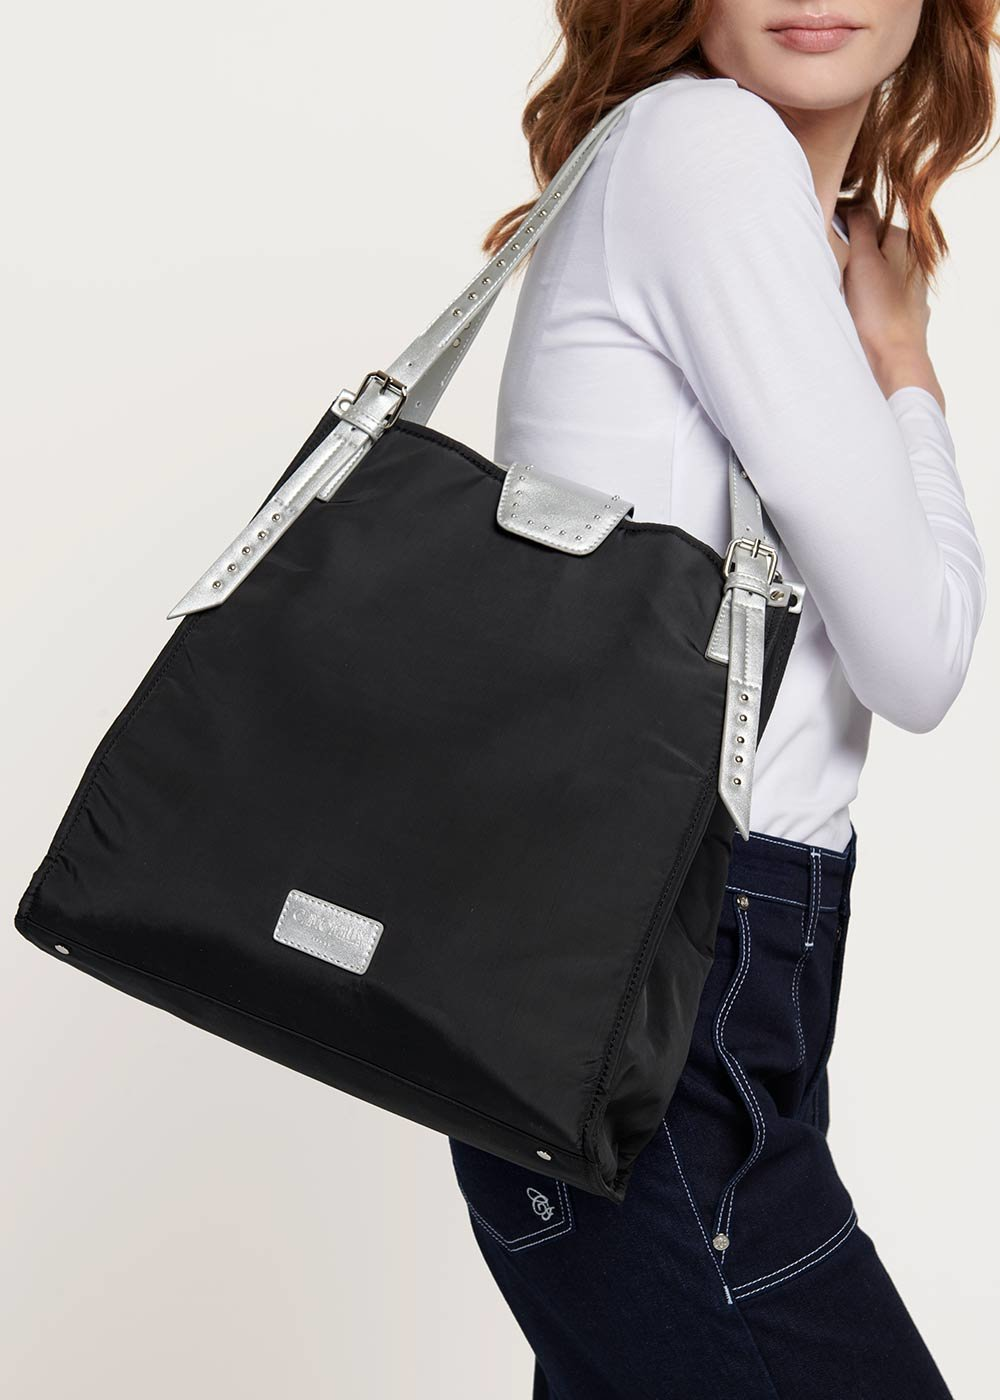 Nylon shopping bag with contrasting handles - Black / Silver - Woman